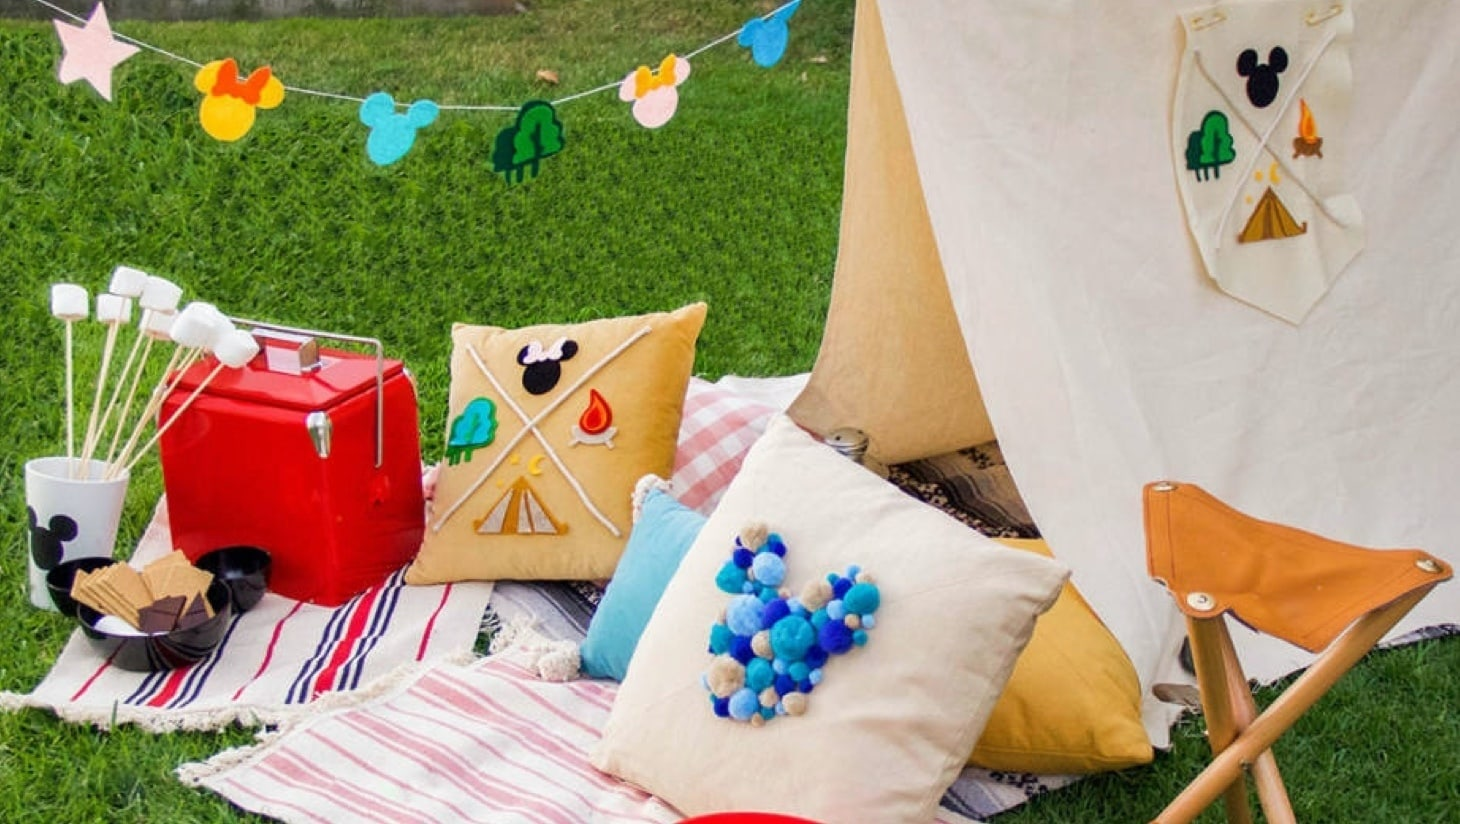 A Mickey inspired tent, cushion and snacks in a garden